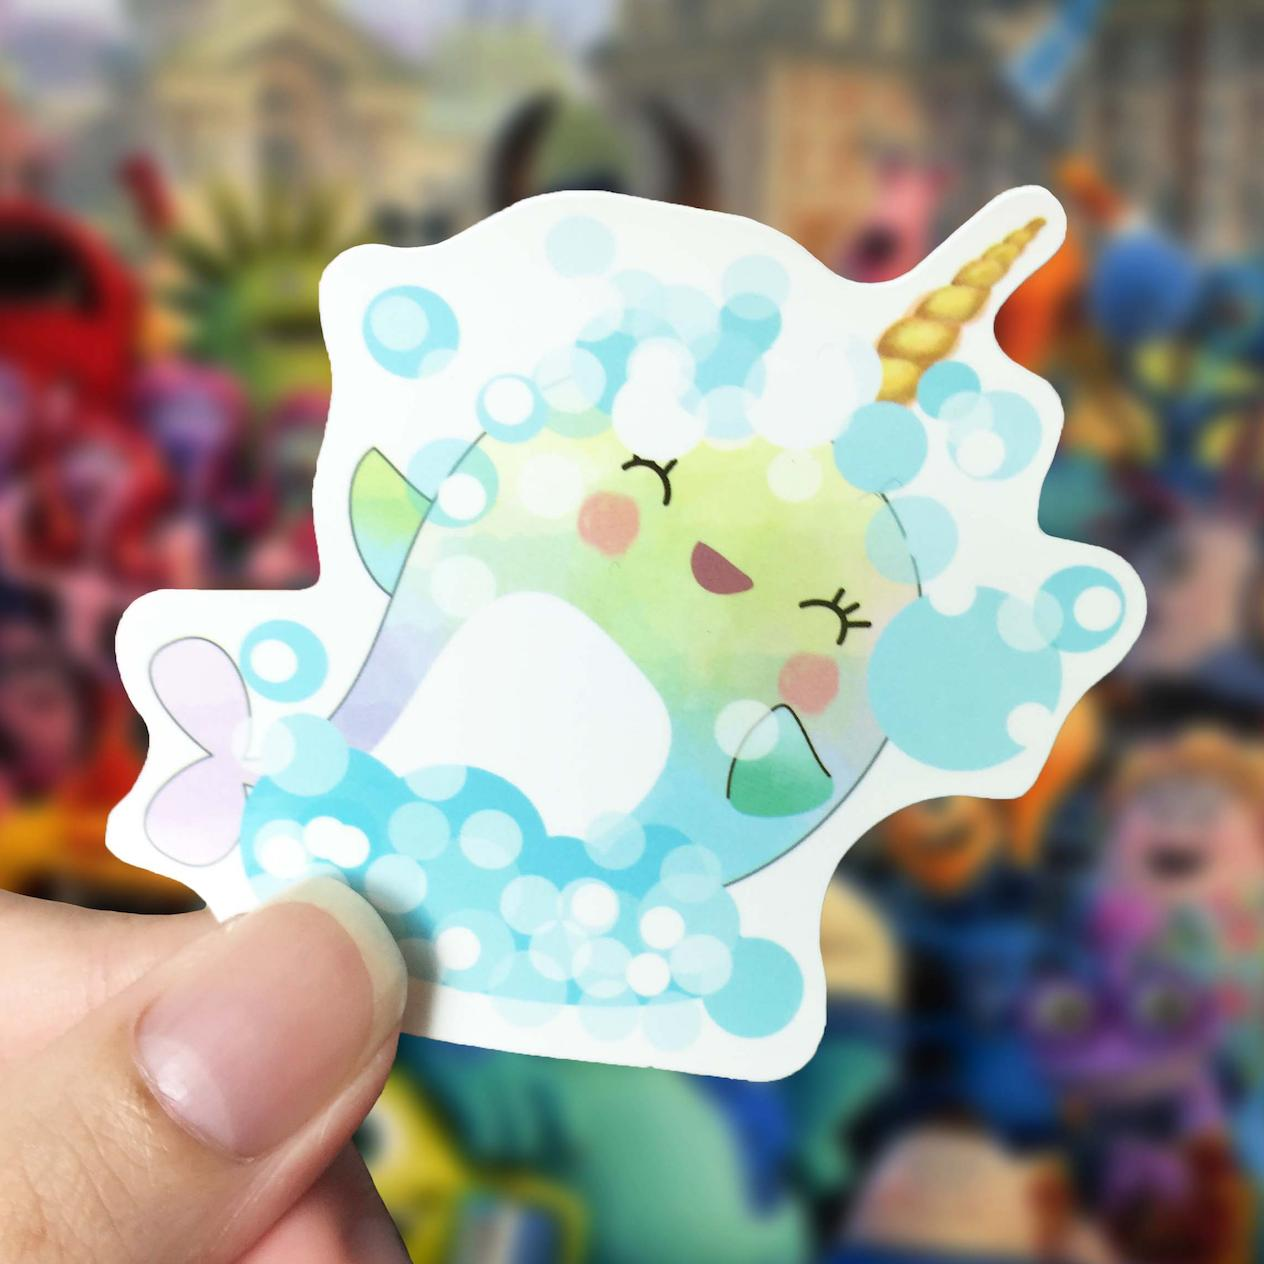 LUNARBAY Whalicorn Bubbles Day Vinyl Sticker / Cute Sticker / Laptop Decal